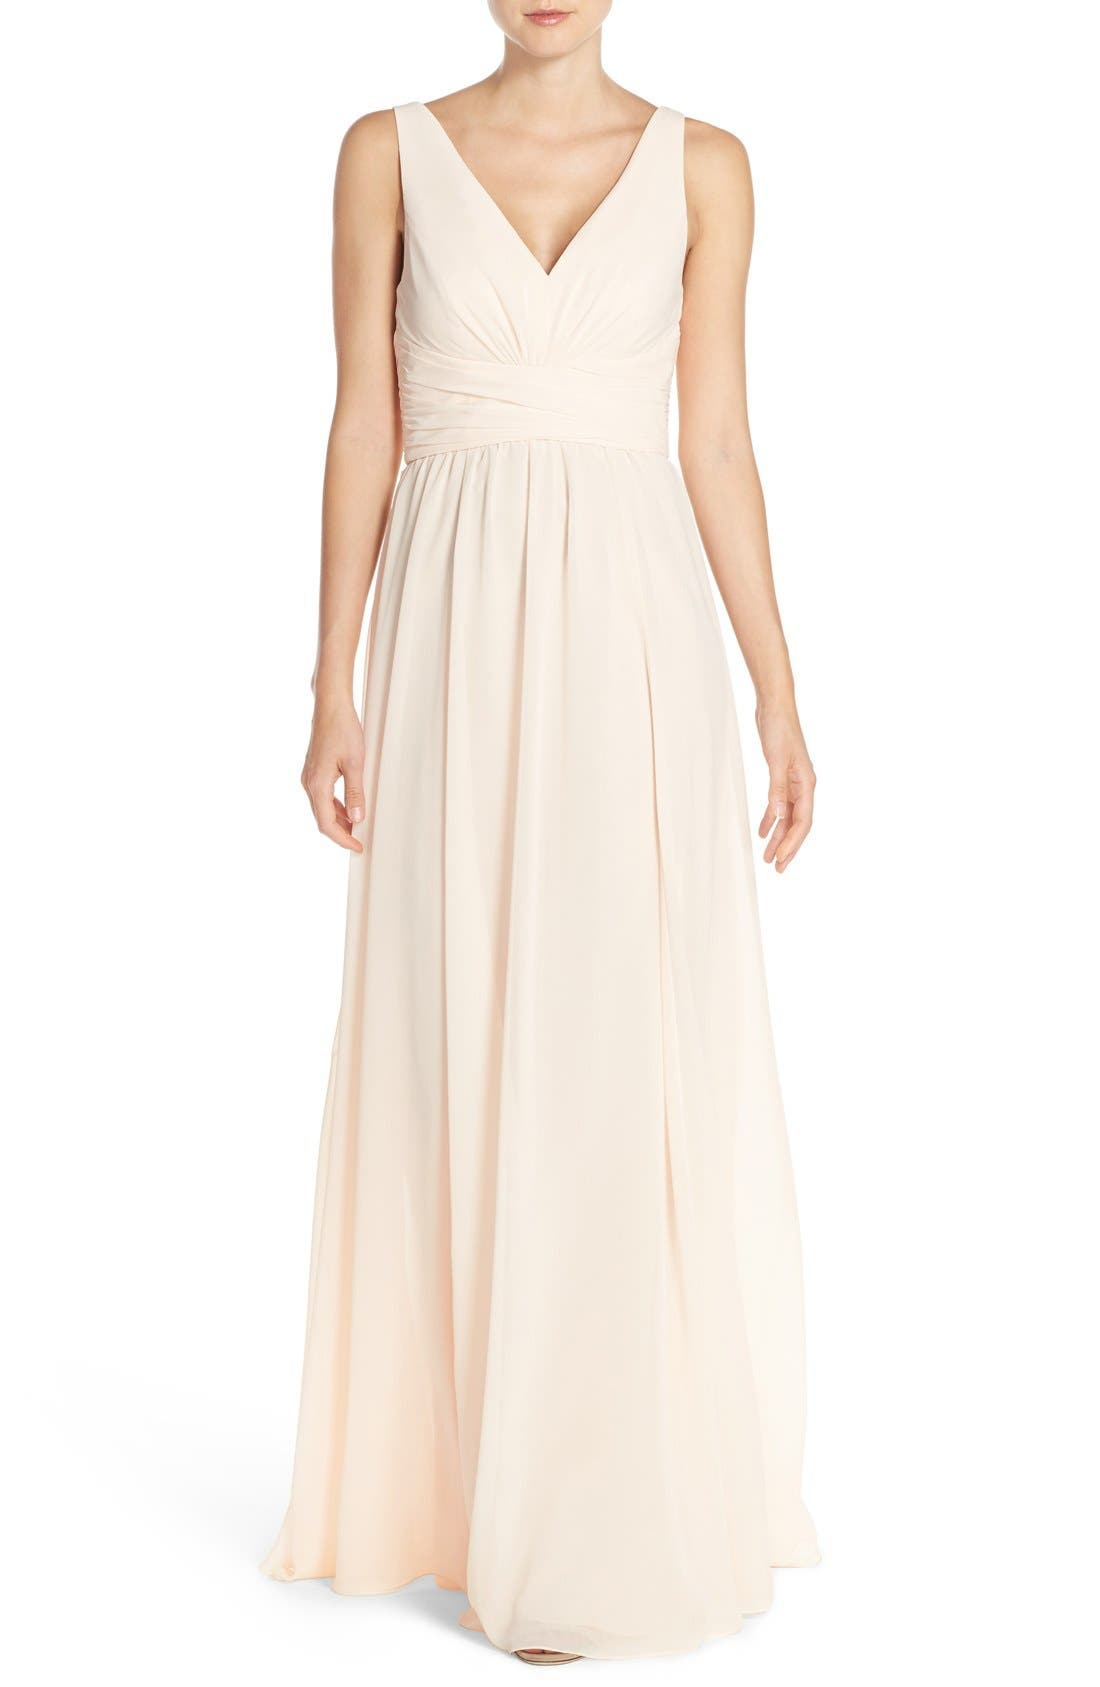 Amsale 'Justine' Double V-Neck Chiffon Gown